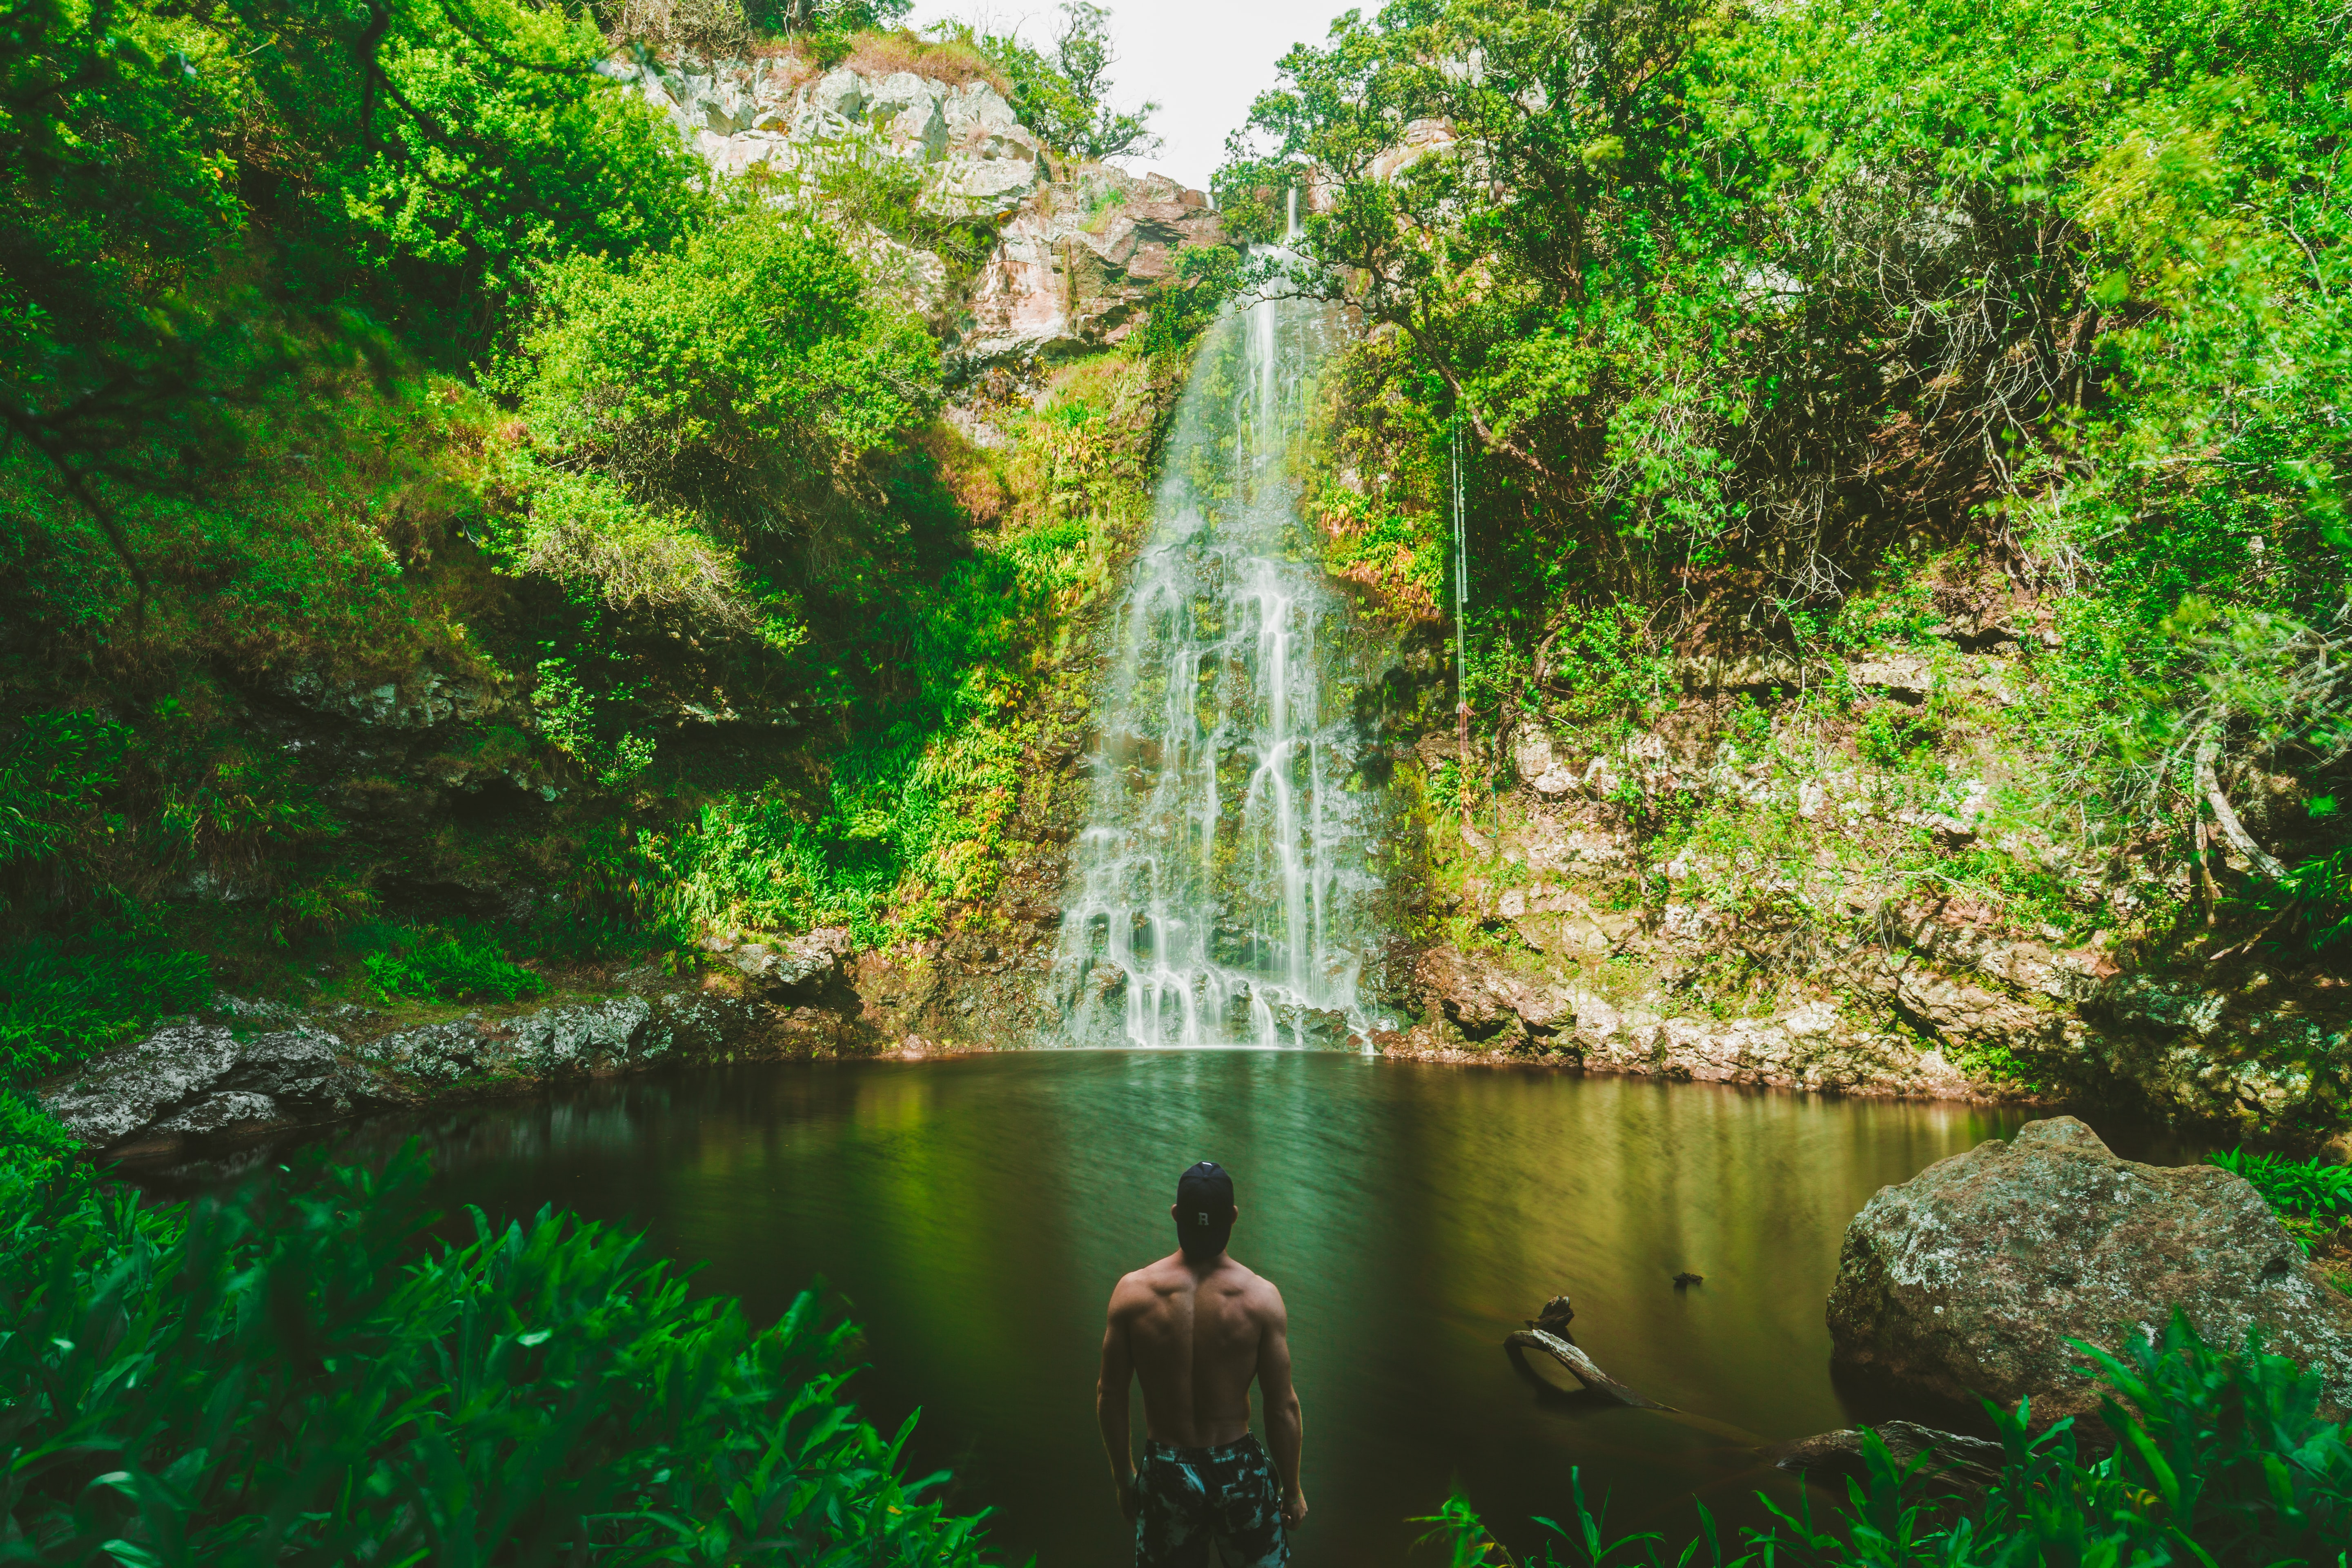 man standing in front of waterfalls during day time